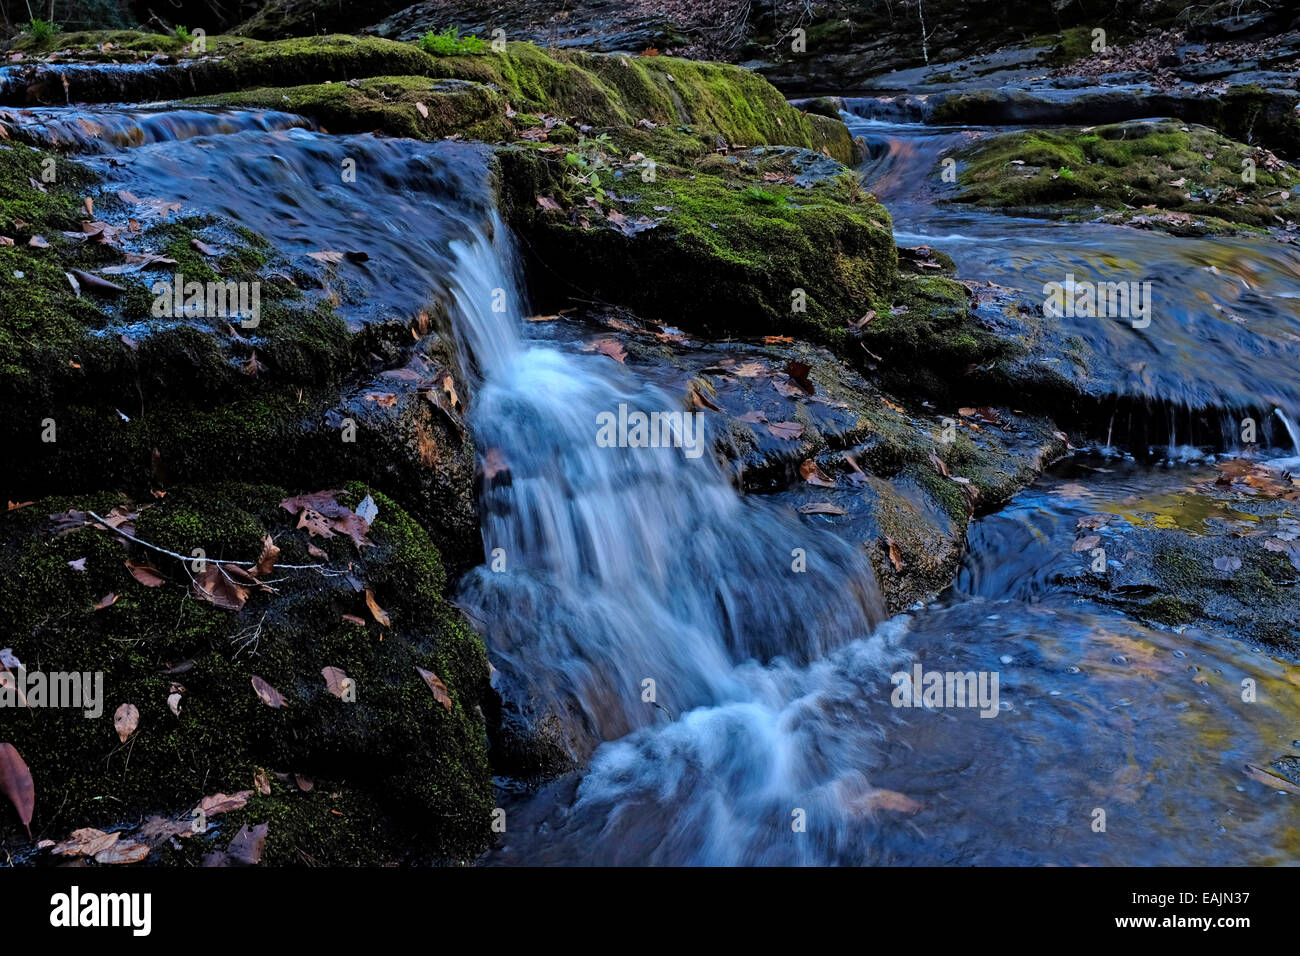 Rushing stream near Dingmans Falls, Pennsylvania - Stock Image